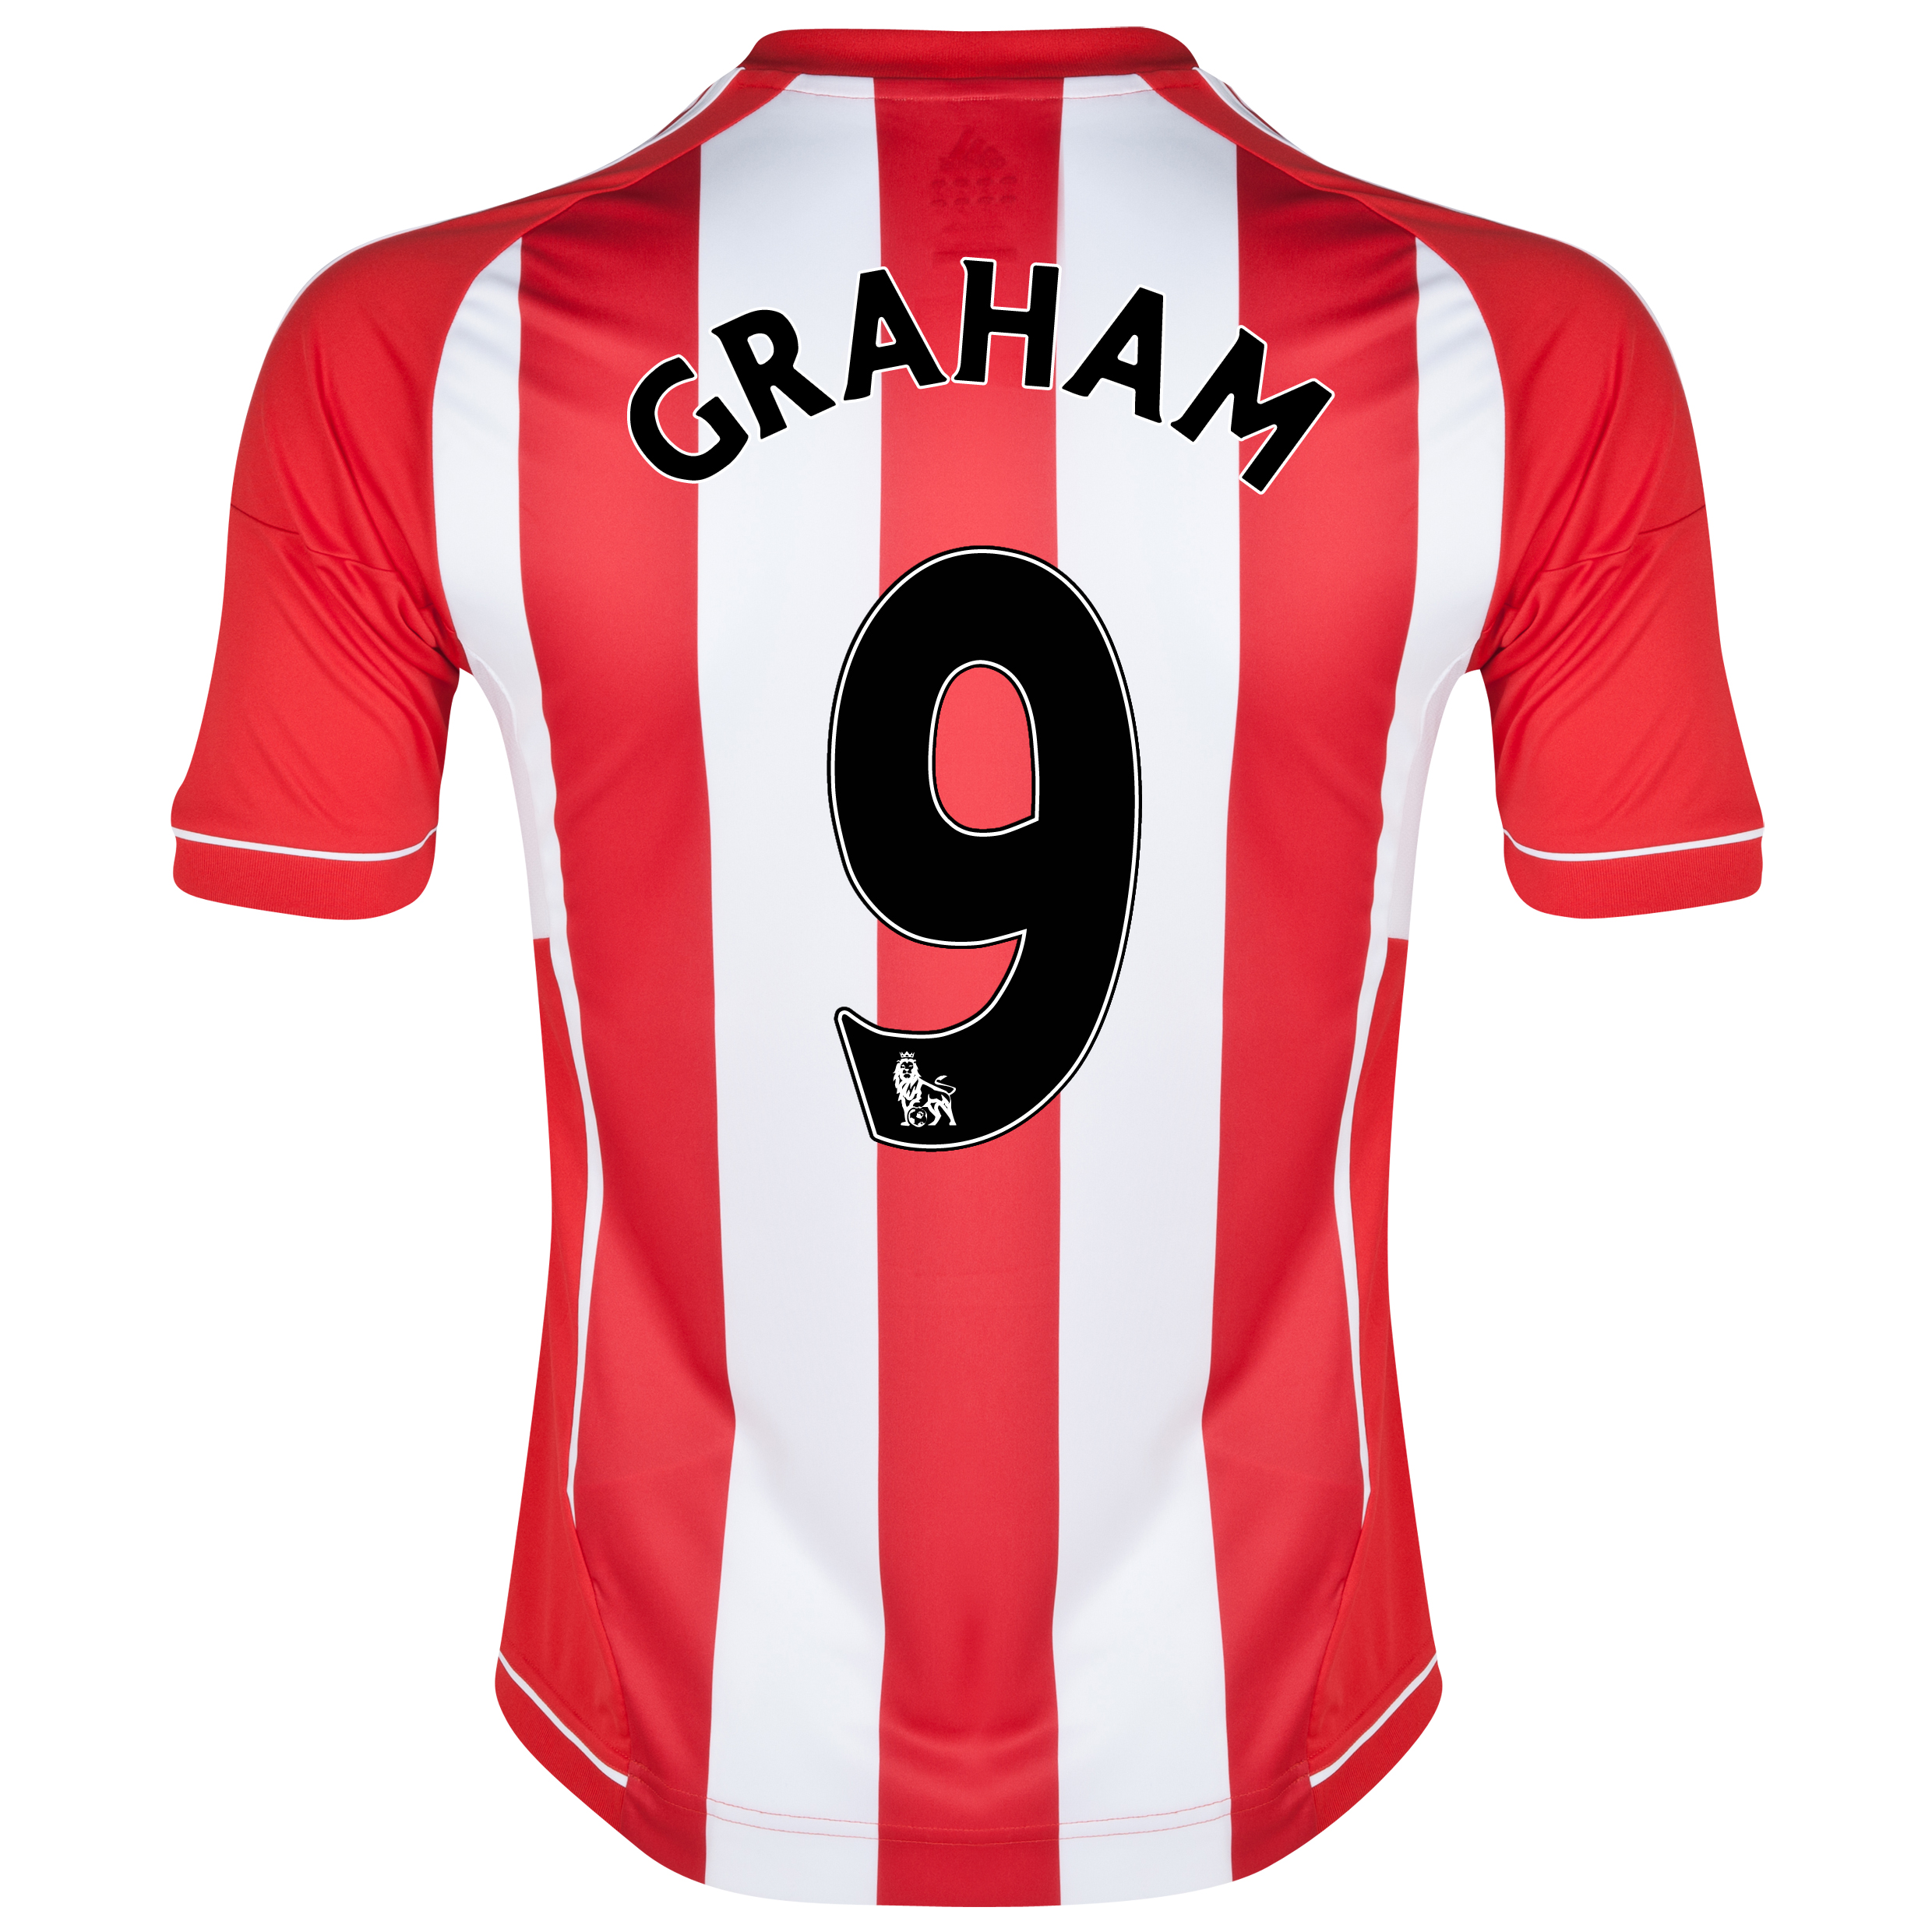 Sunderland Home Shirt 2012/13 with Graham 9 printing